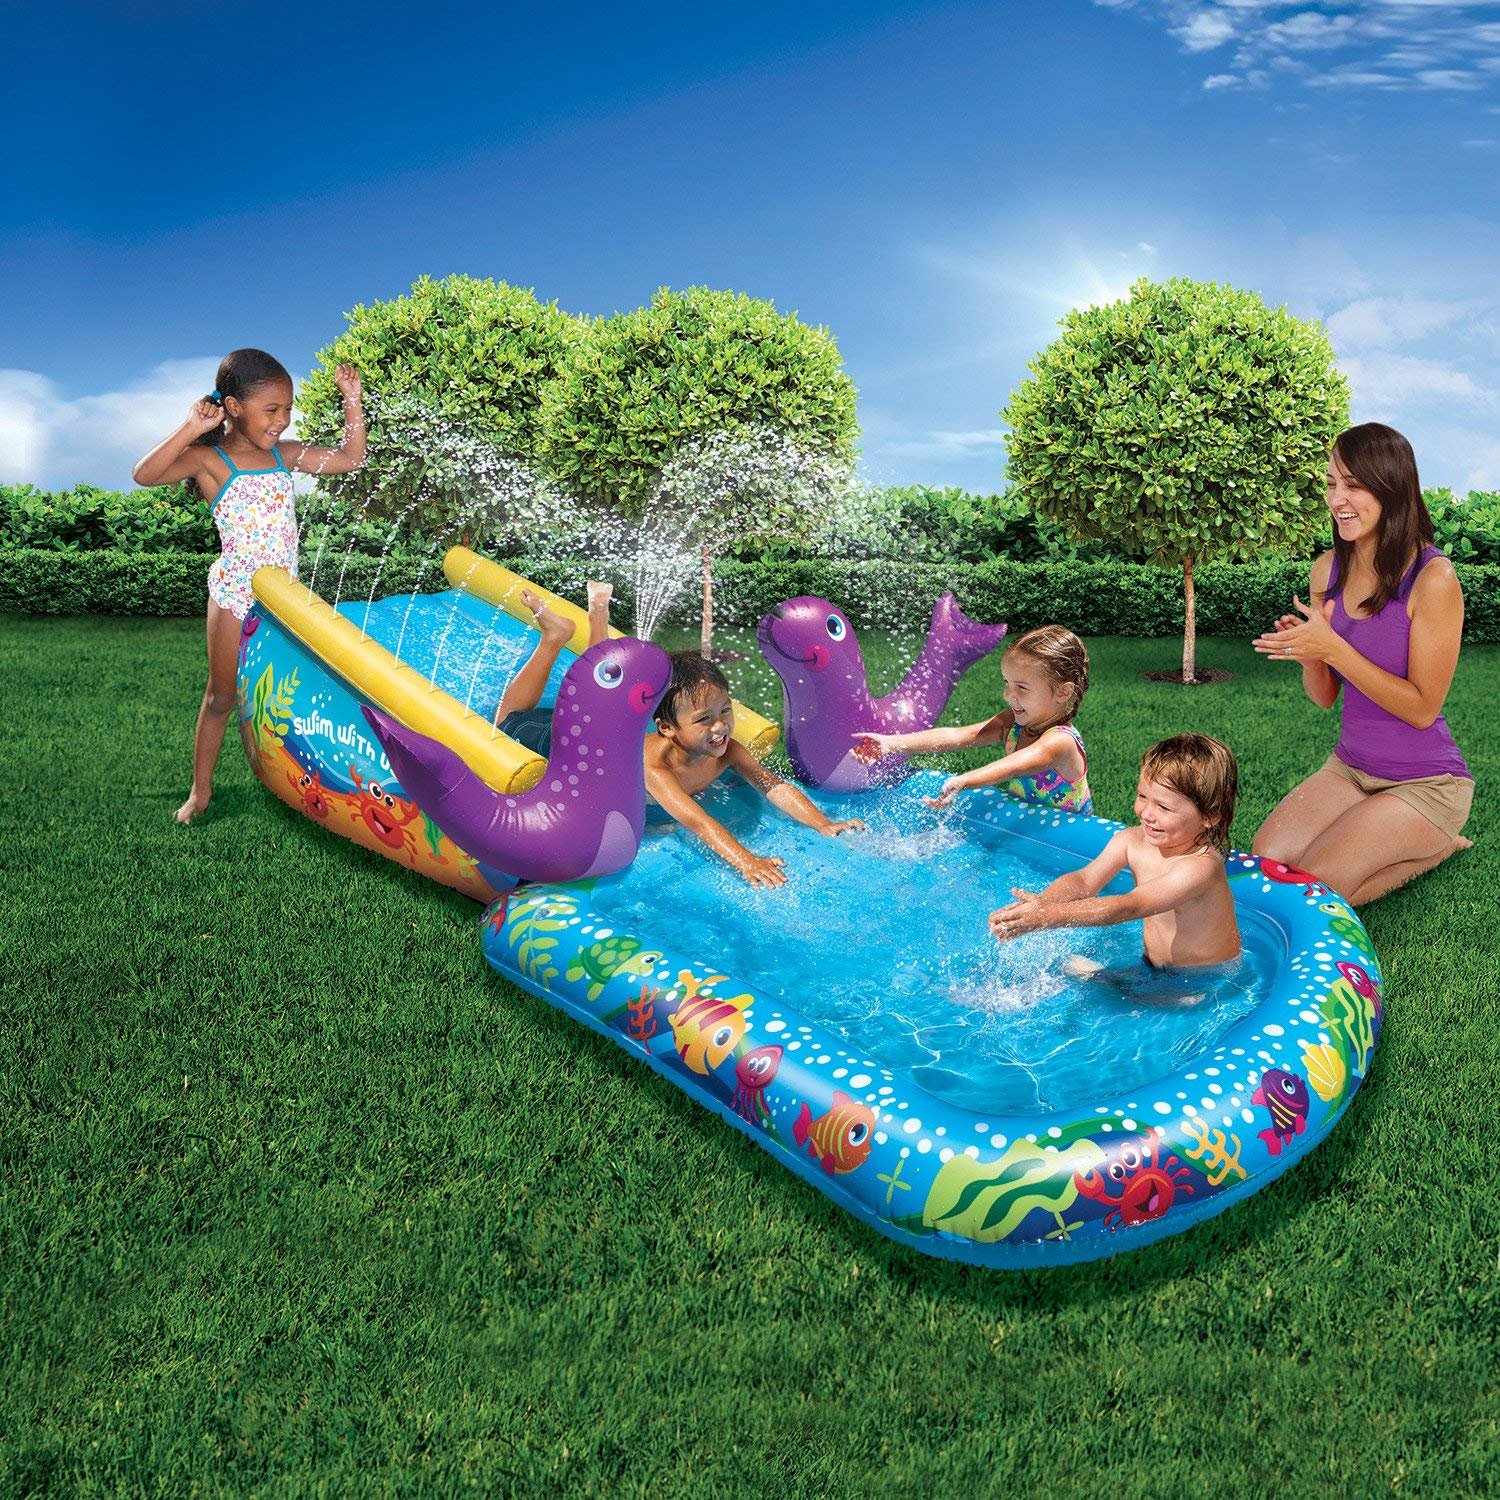 BANZAI Kid Toddler Outdoor Inflatable My First Water Slide and Splash Pool by BANZAI (Image #1)